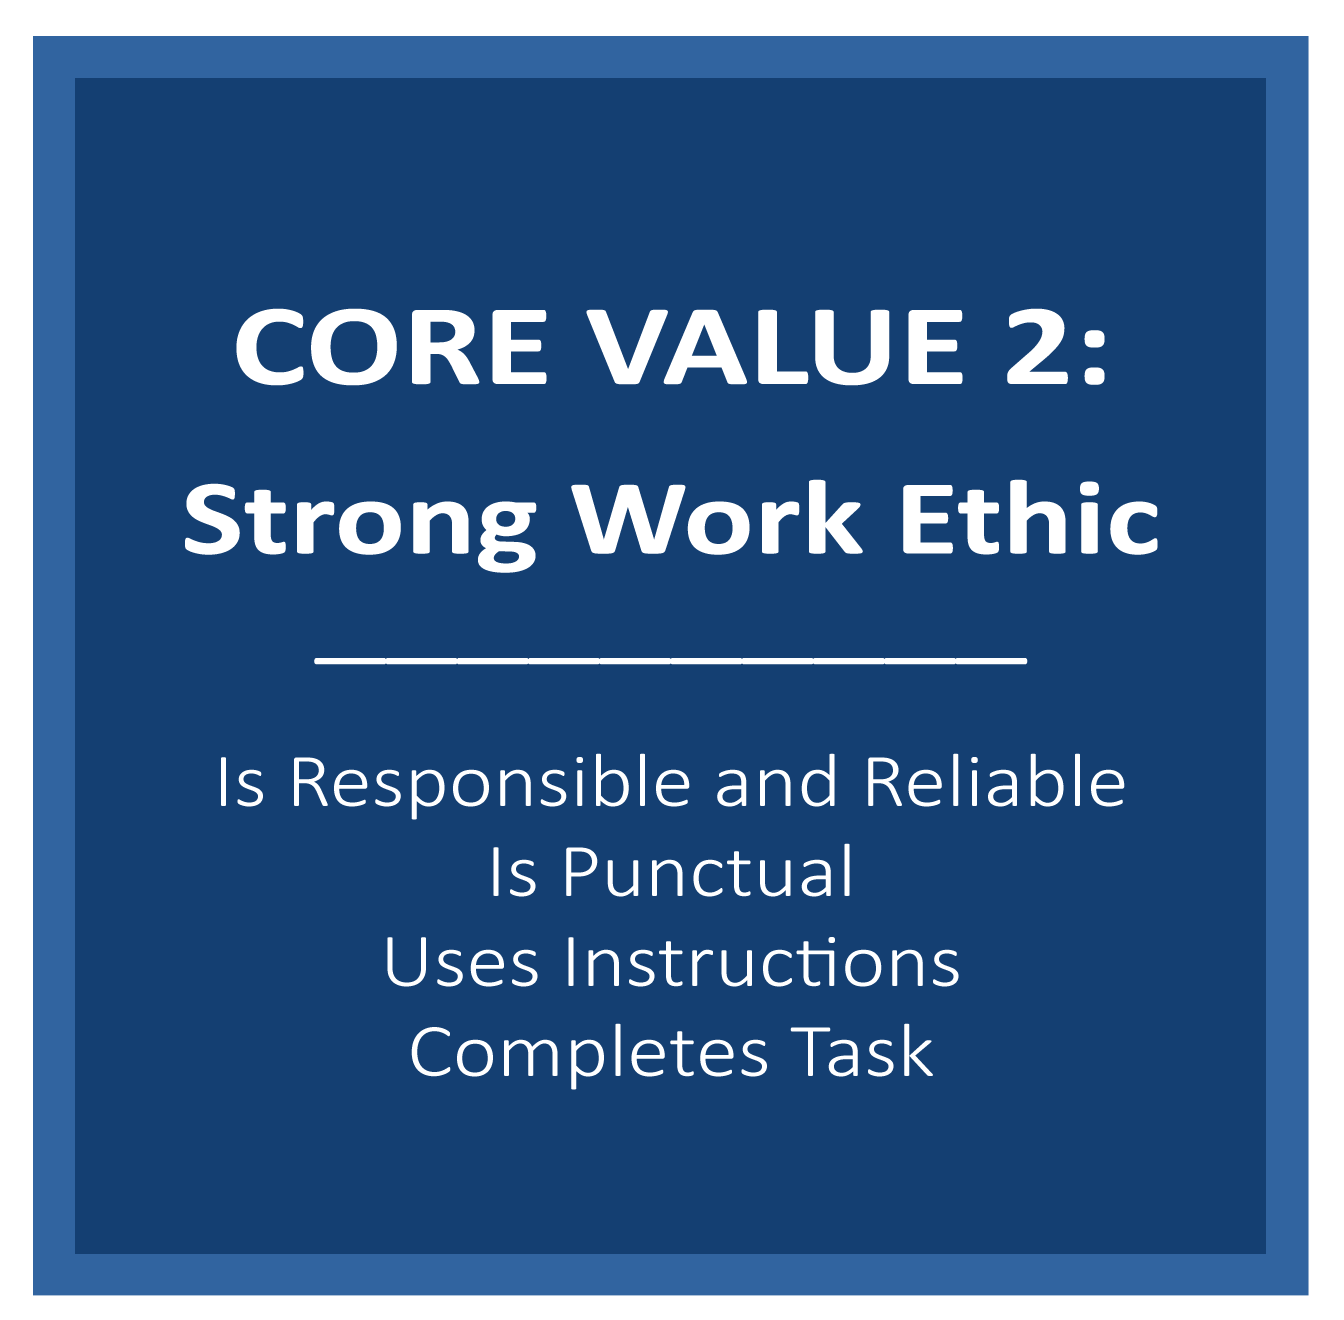 corevalue2.png